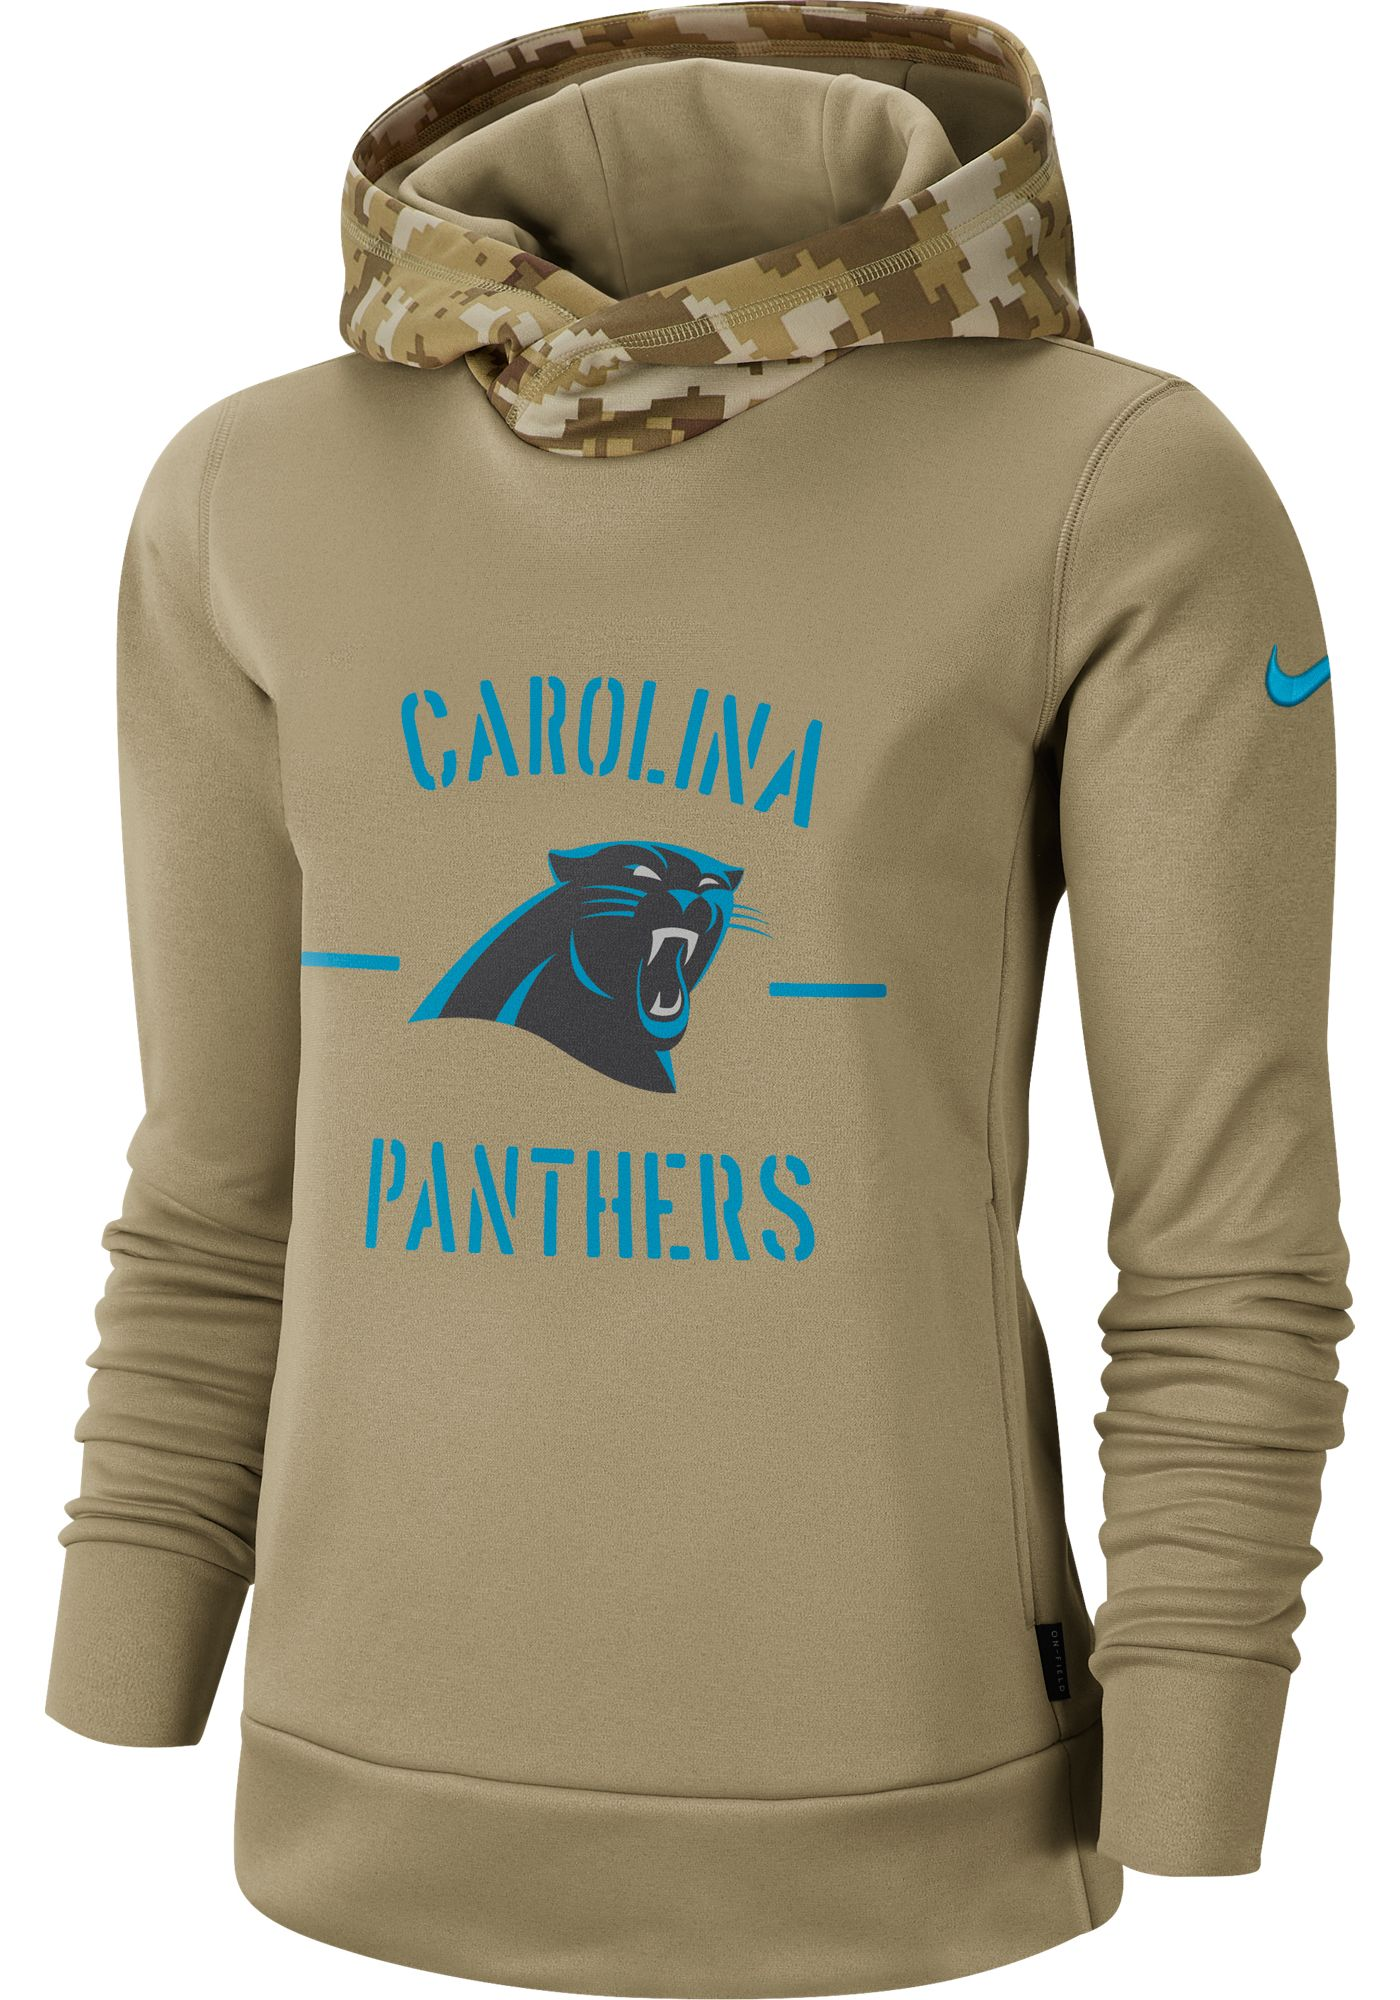 Nike Women's Salute to Service Carolina Panthers Therma-FIT Beige Camo Hoodie